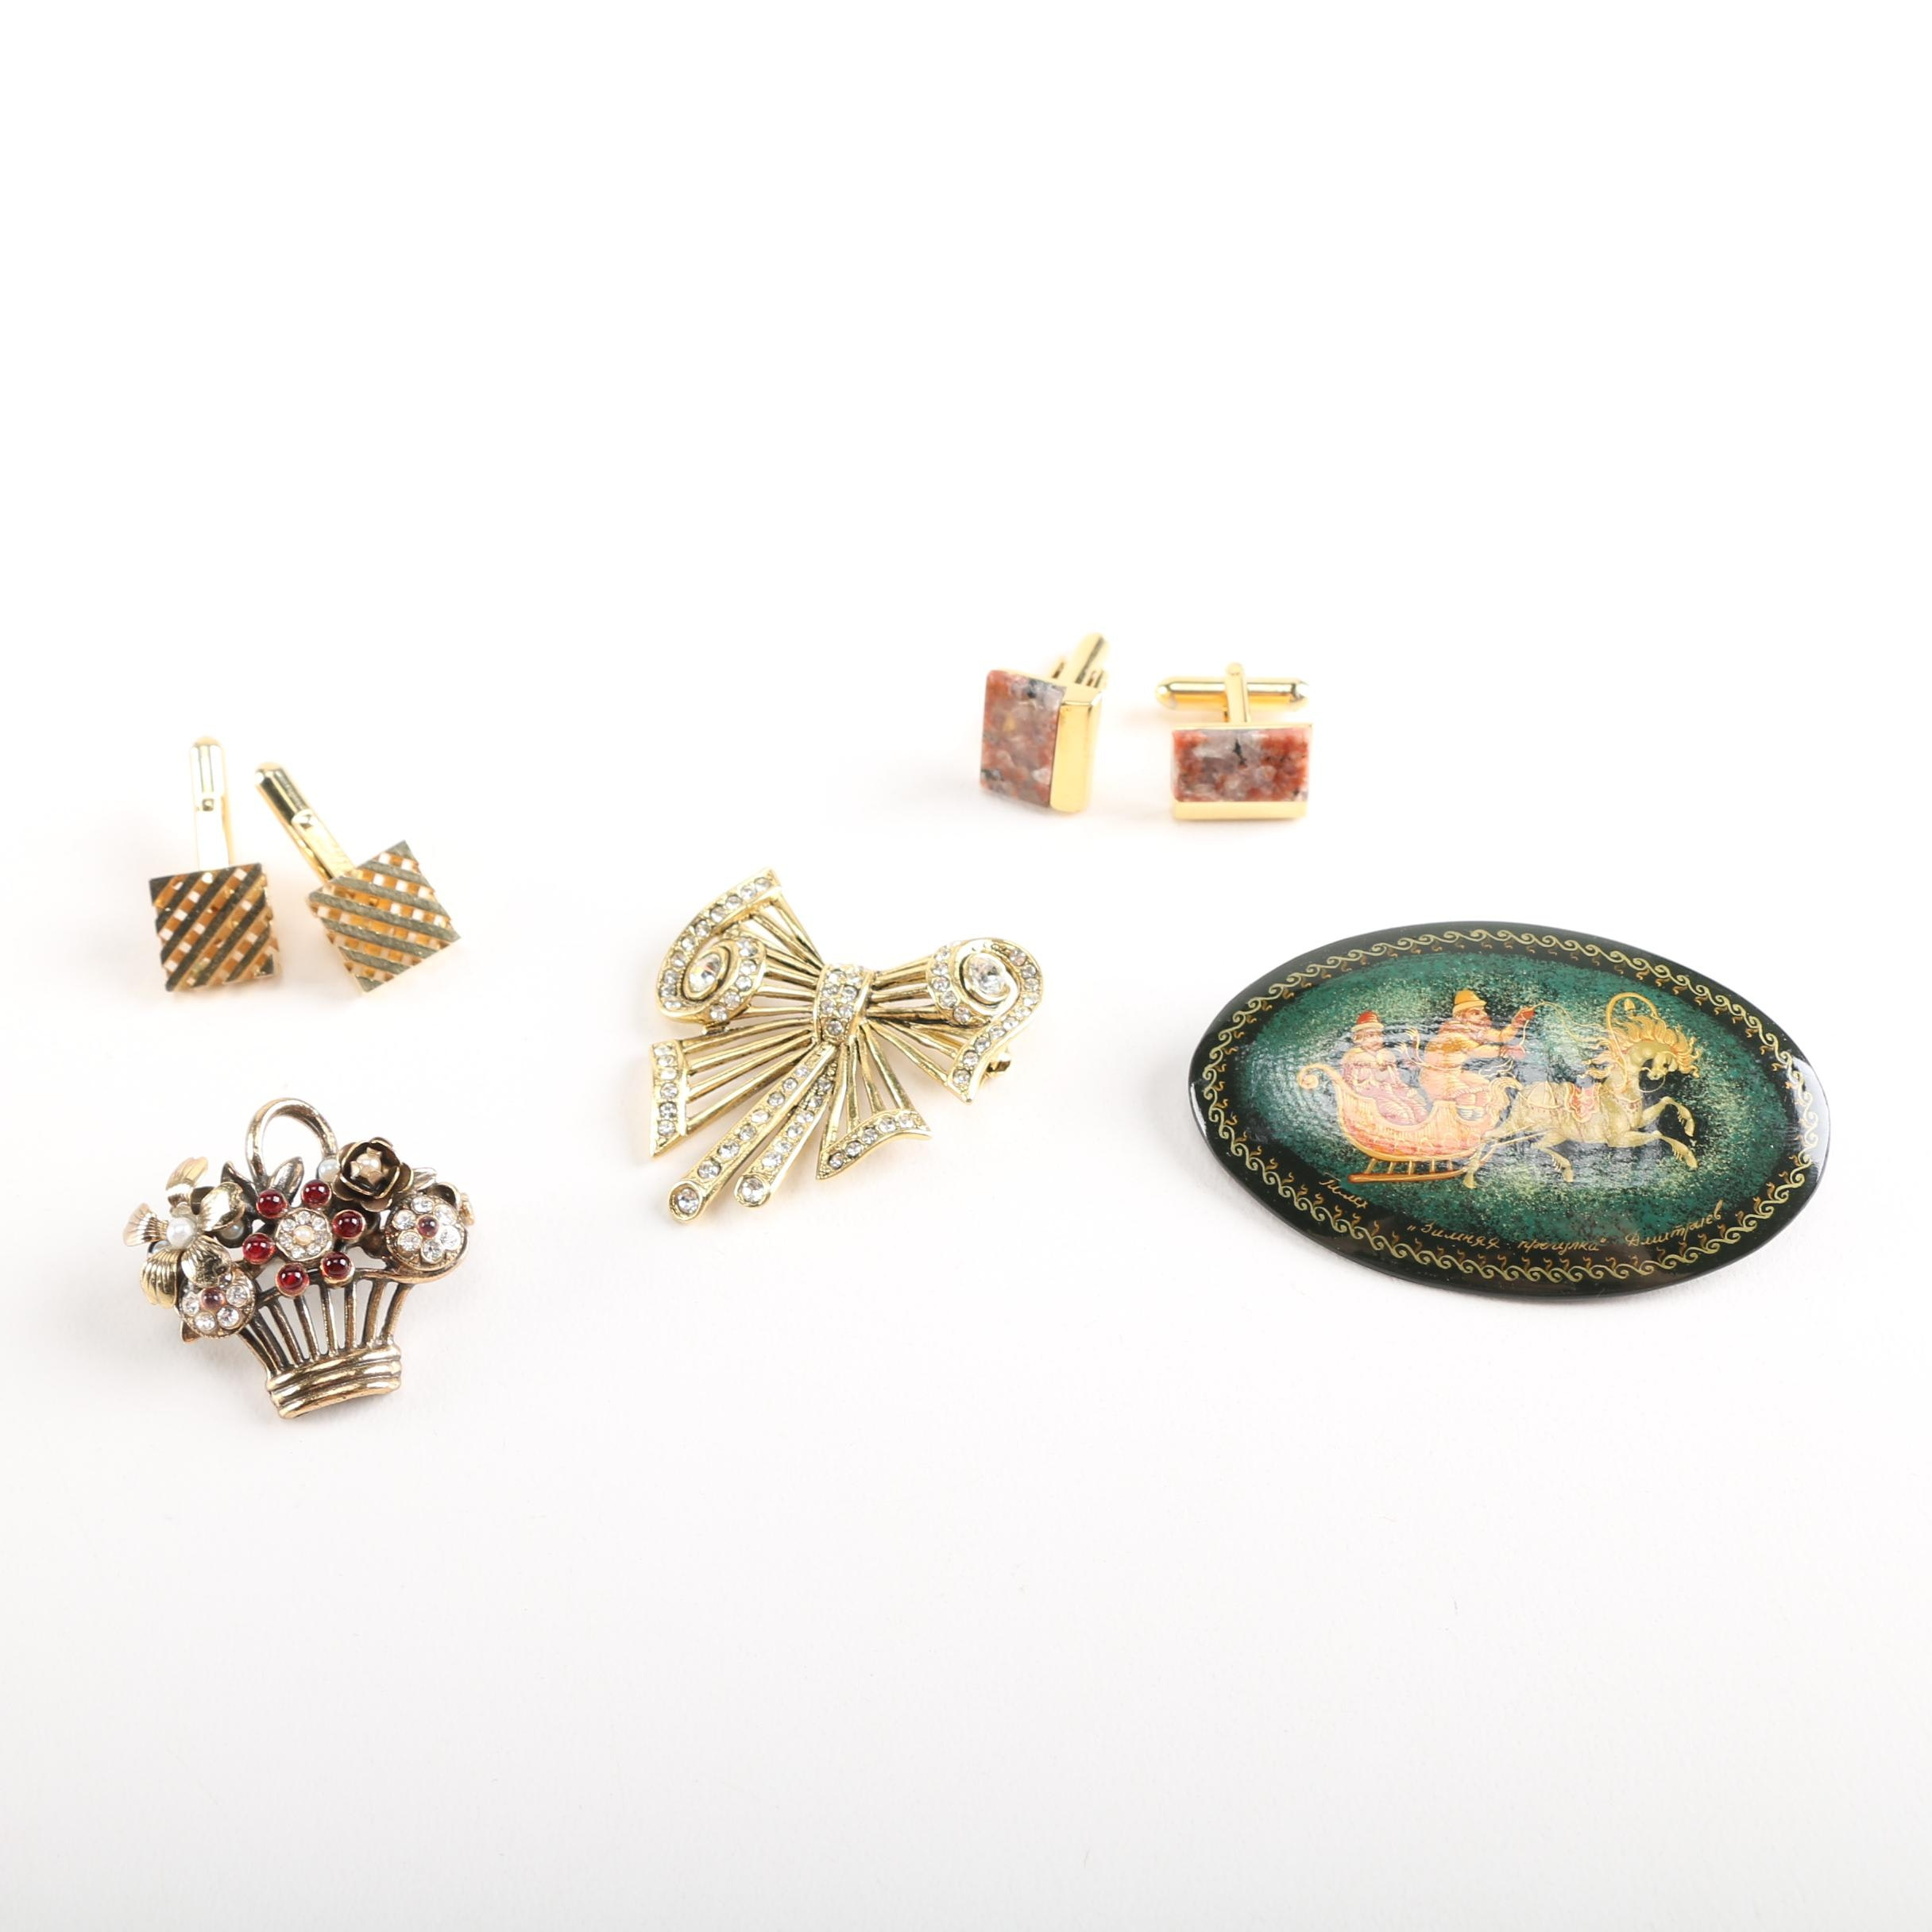 Vintage Cufflinks and Brooches Featuring Christian Dior